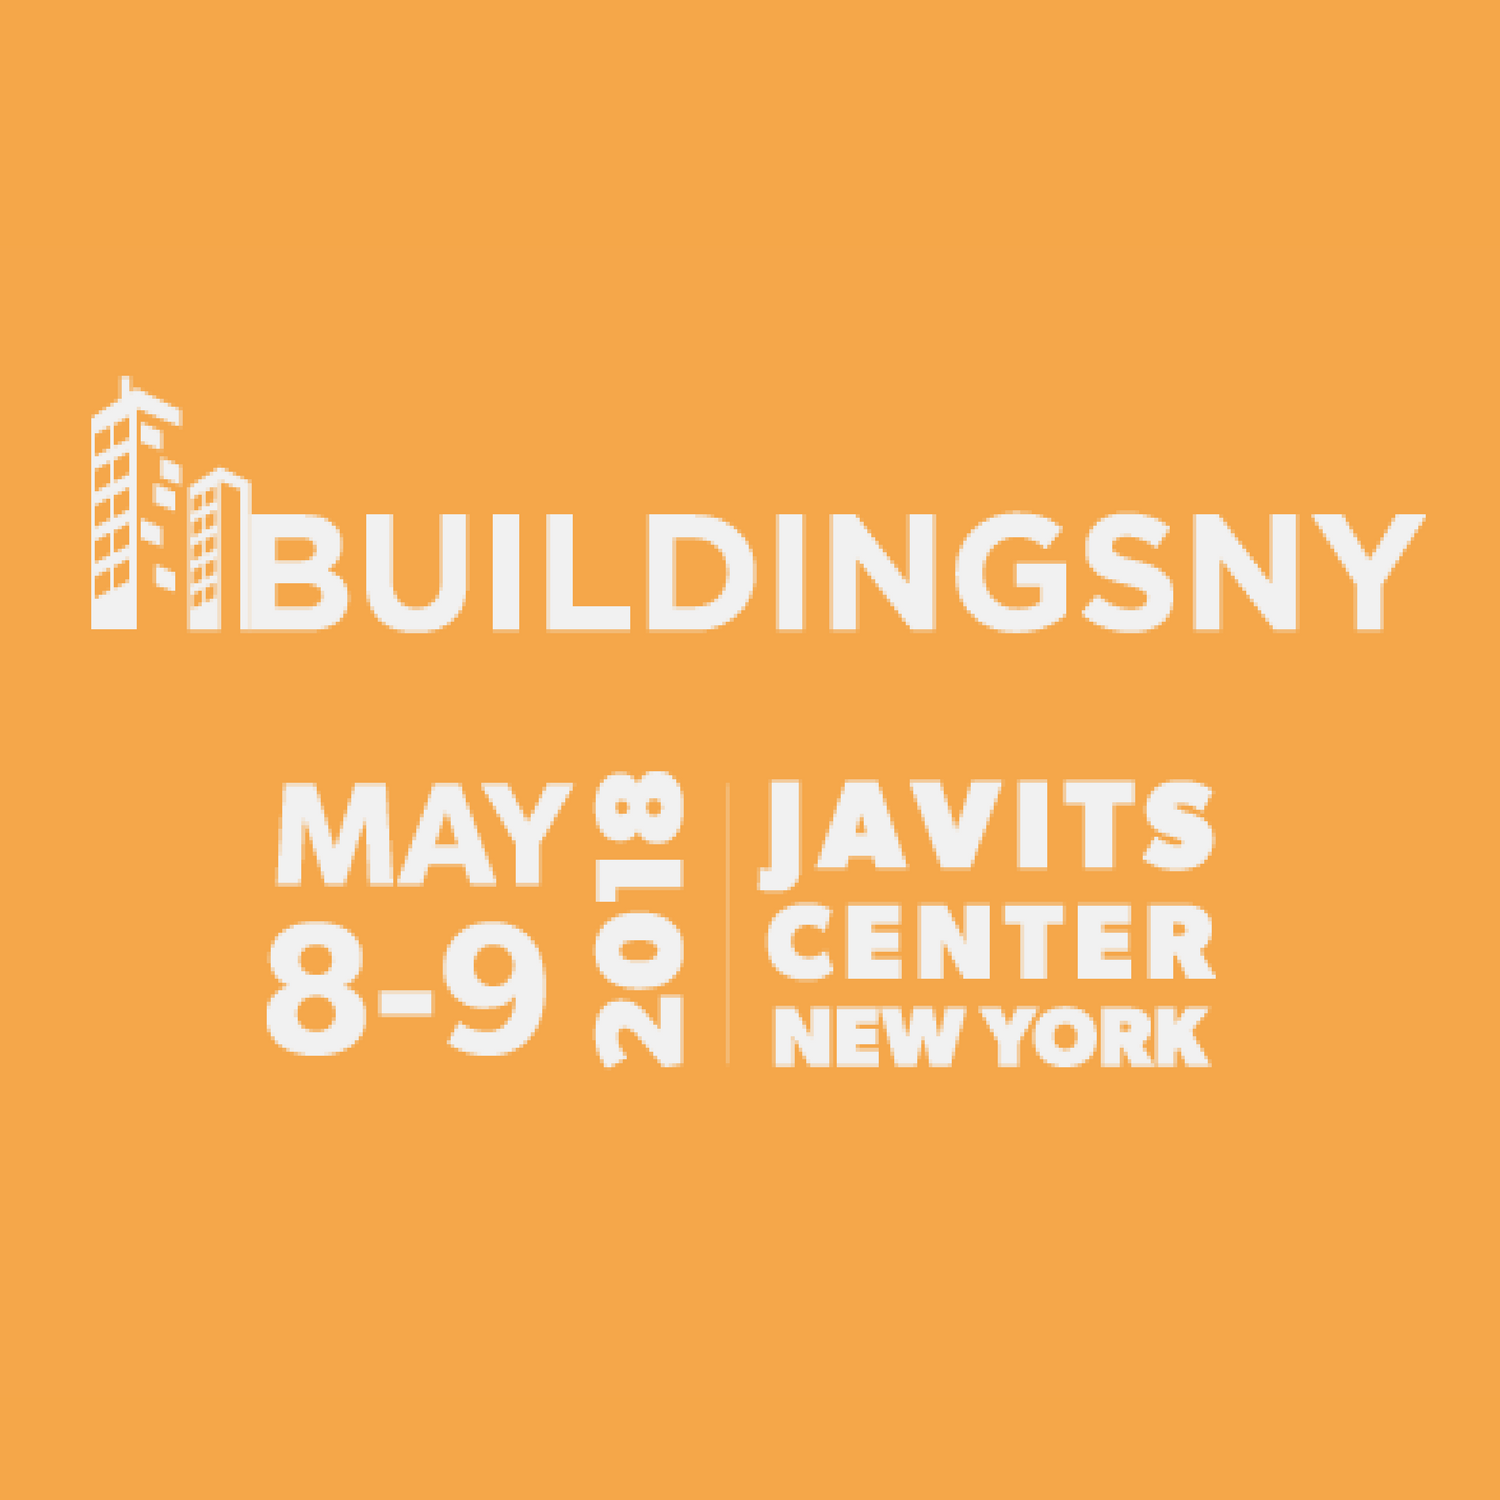 BuildingsNY 2018 NYC Javits Center Electronic Drives and Controls Bob Pusateri